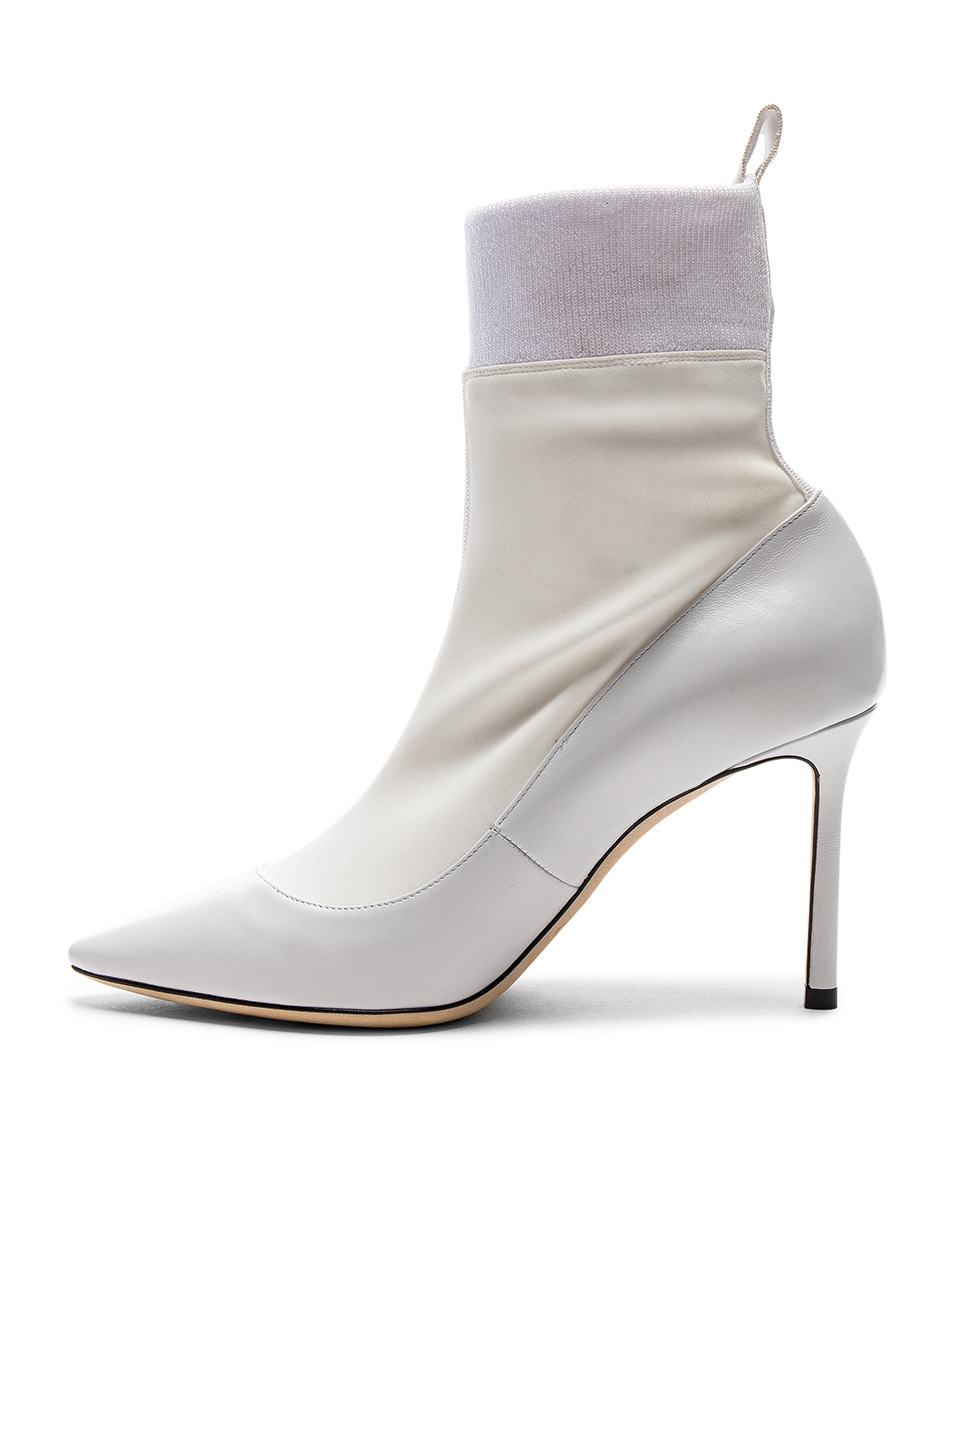 Image 5 of Jimmy Choo Brandon 85 Leather Boots in White